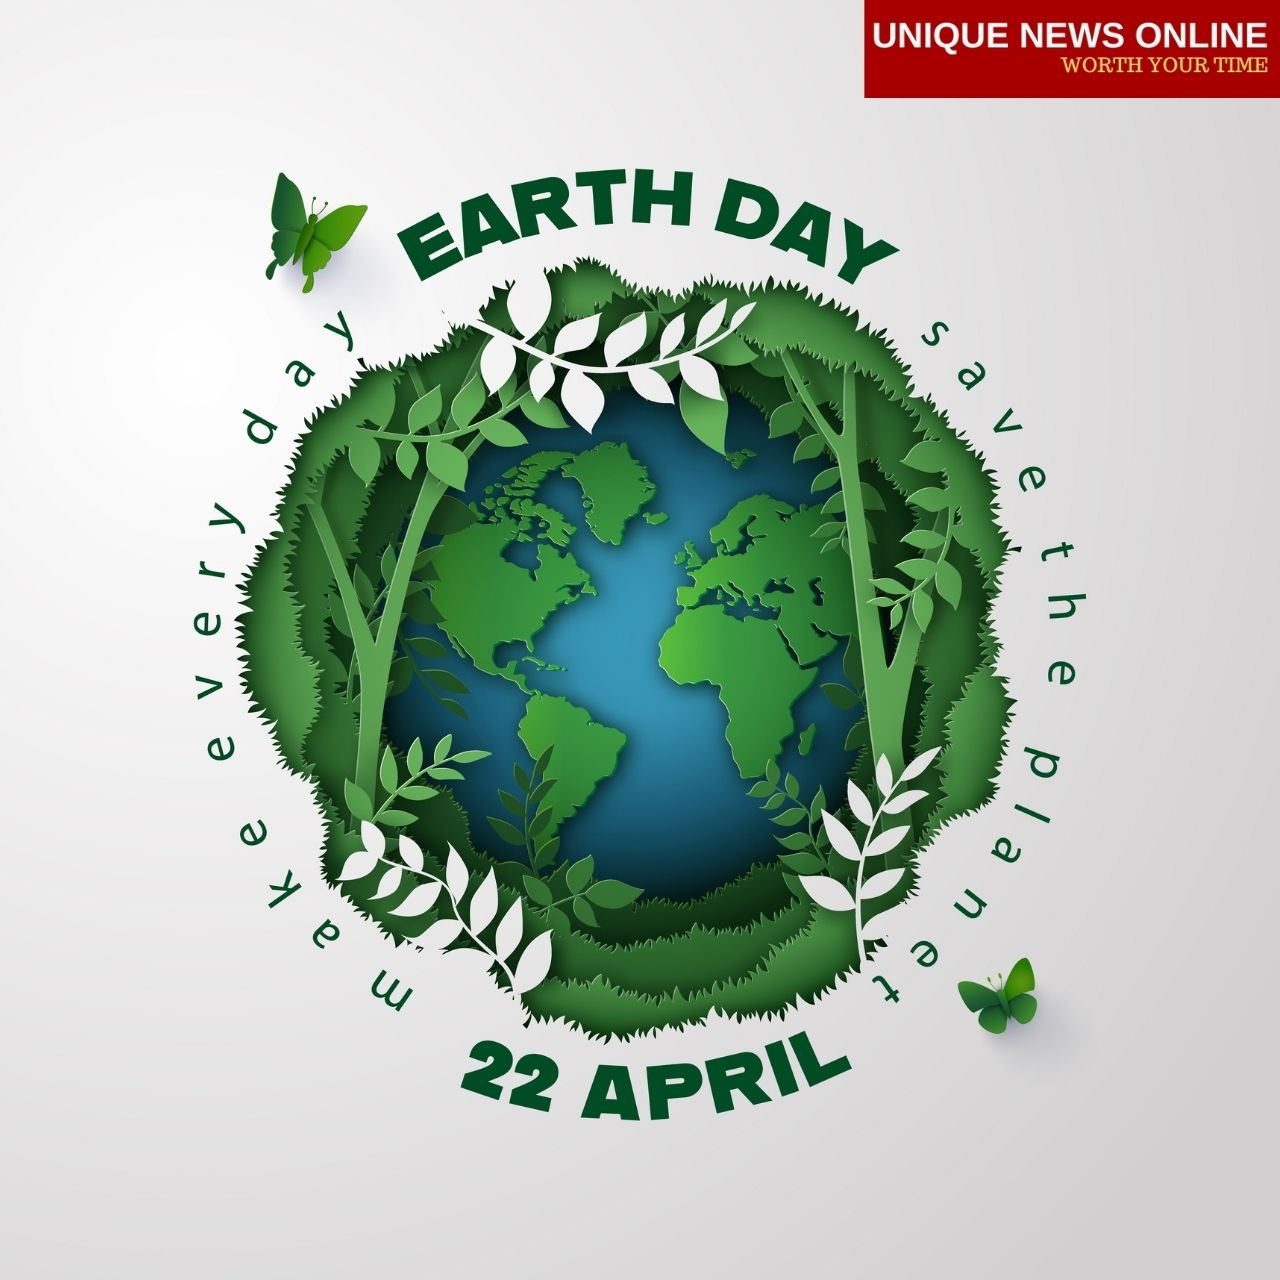 World Earth Day 2021 Theme, Wishes, Quotes, and Images to Share